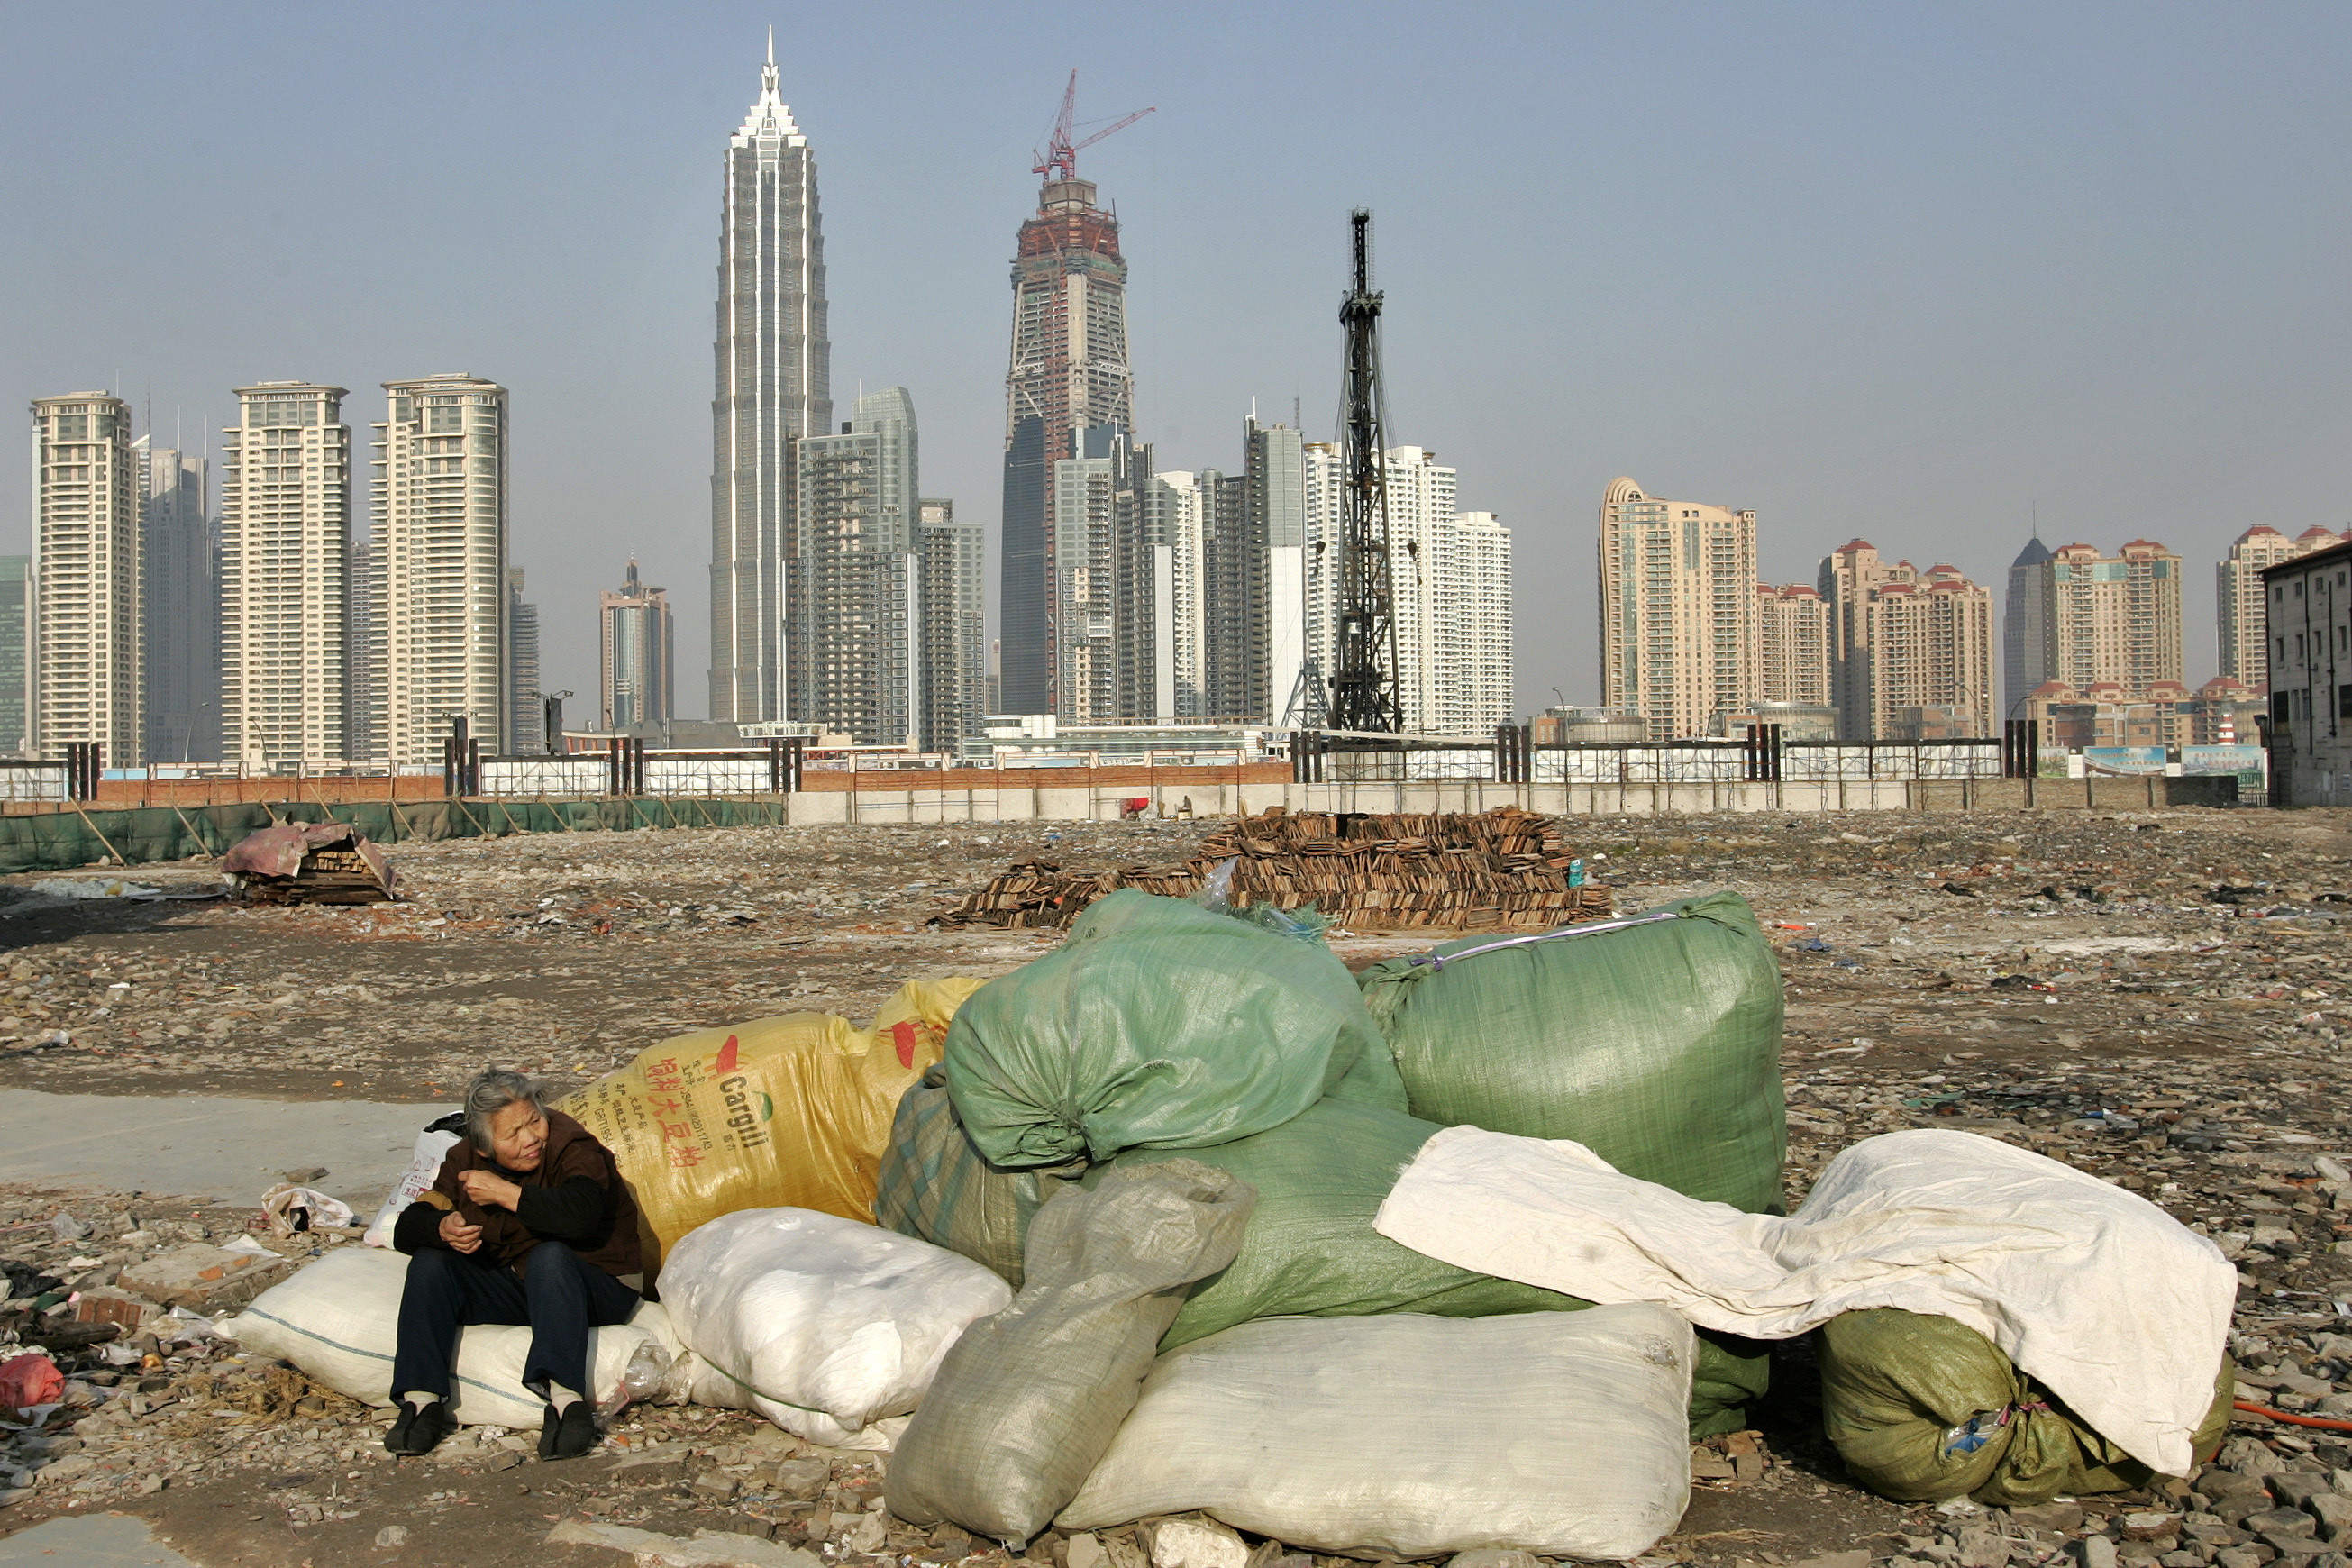 A garbage collector rests at a demolished housing area in Shanghai January 7, 2007. A report by the Chinese Academy of Social Sciences (CASS) shows that China's worrisome income gap is showing no signs of narrowing despite government efforts to bridge it,  Xinhua News Agency reported.  REUTERS/Aly Song (CHINA) - GM1DUIHQNVAA